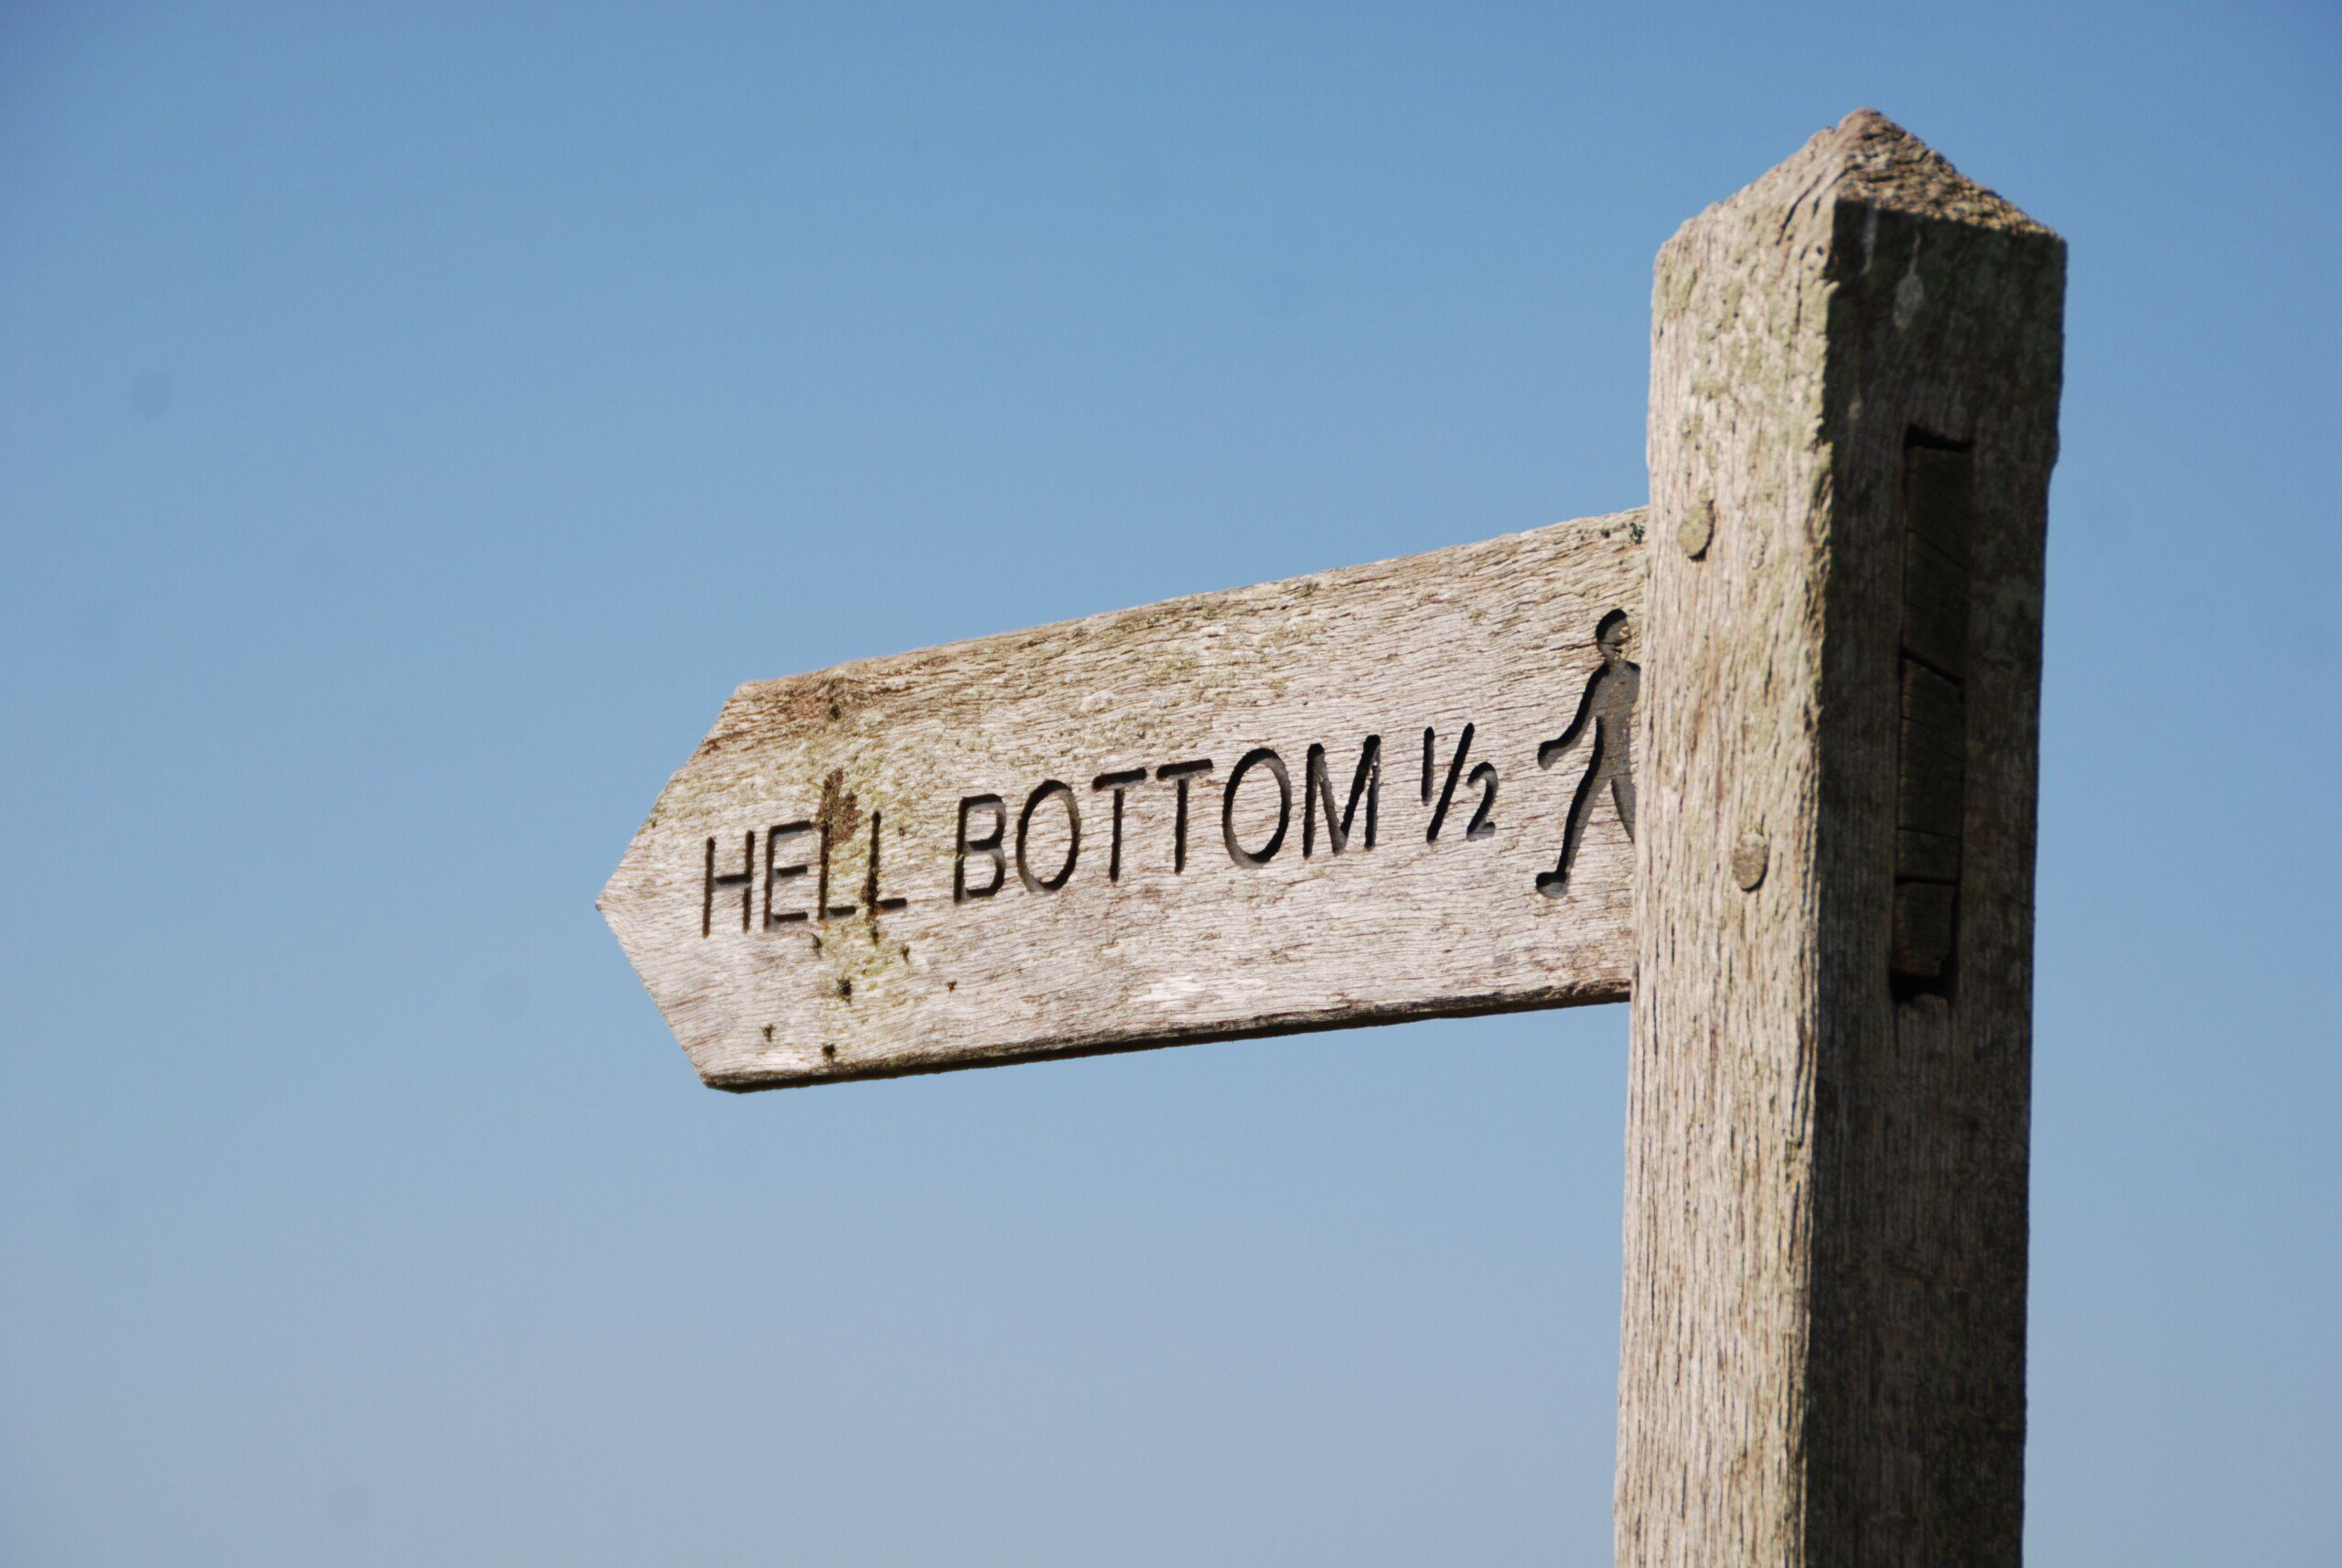 Signpost to Hell Bottom, 1/2 mile